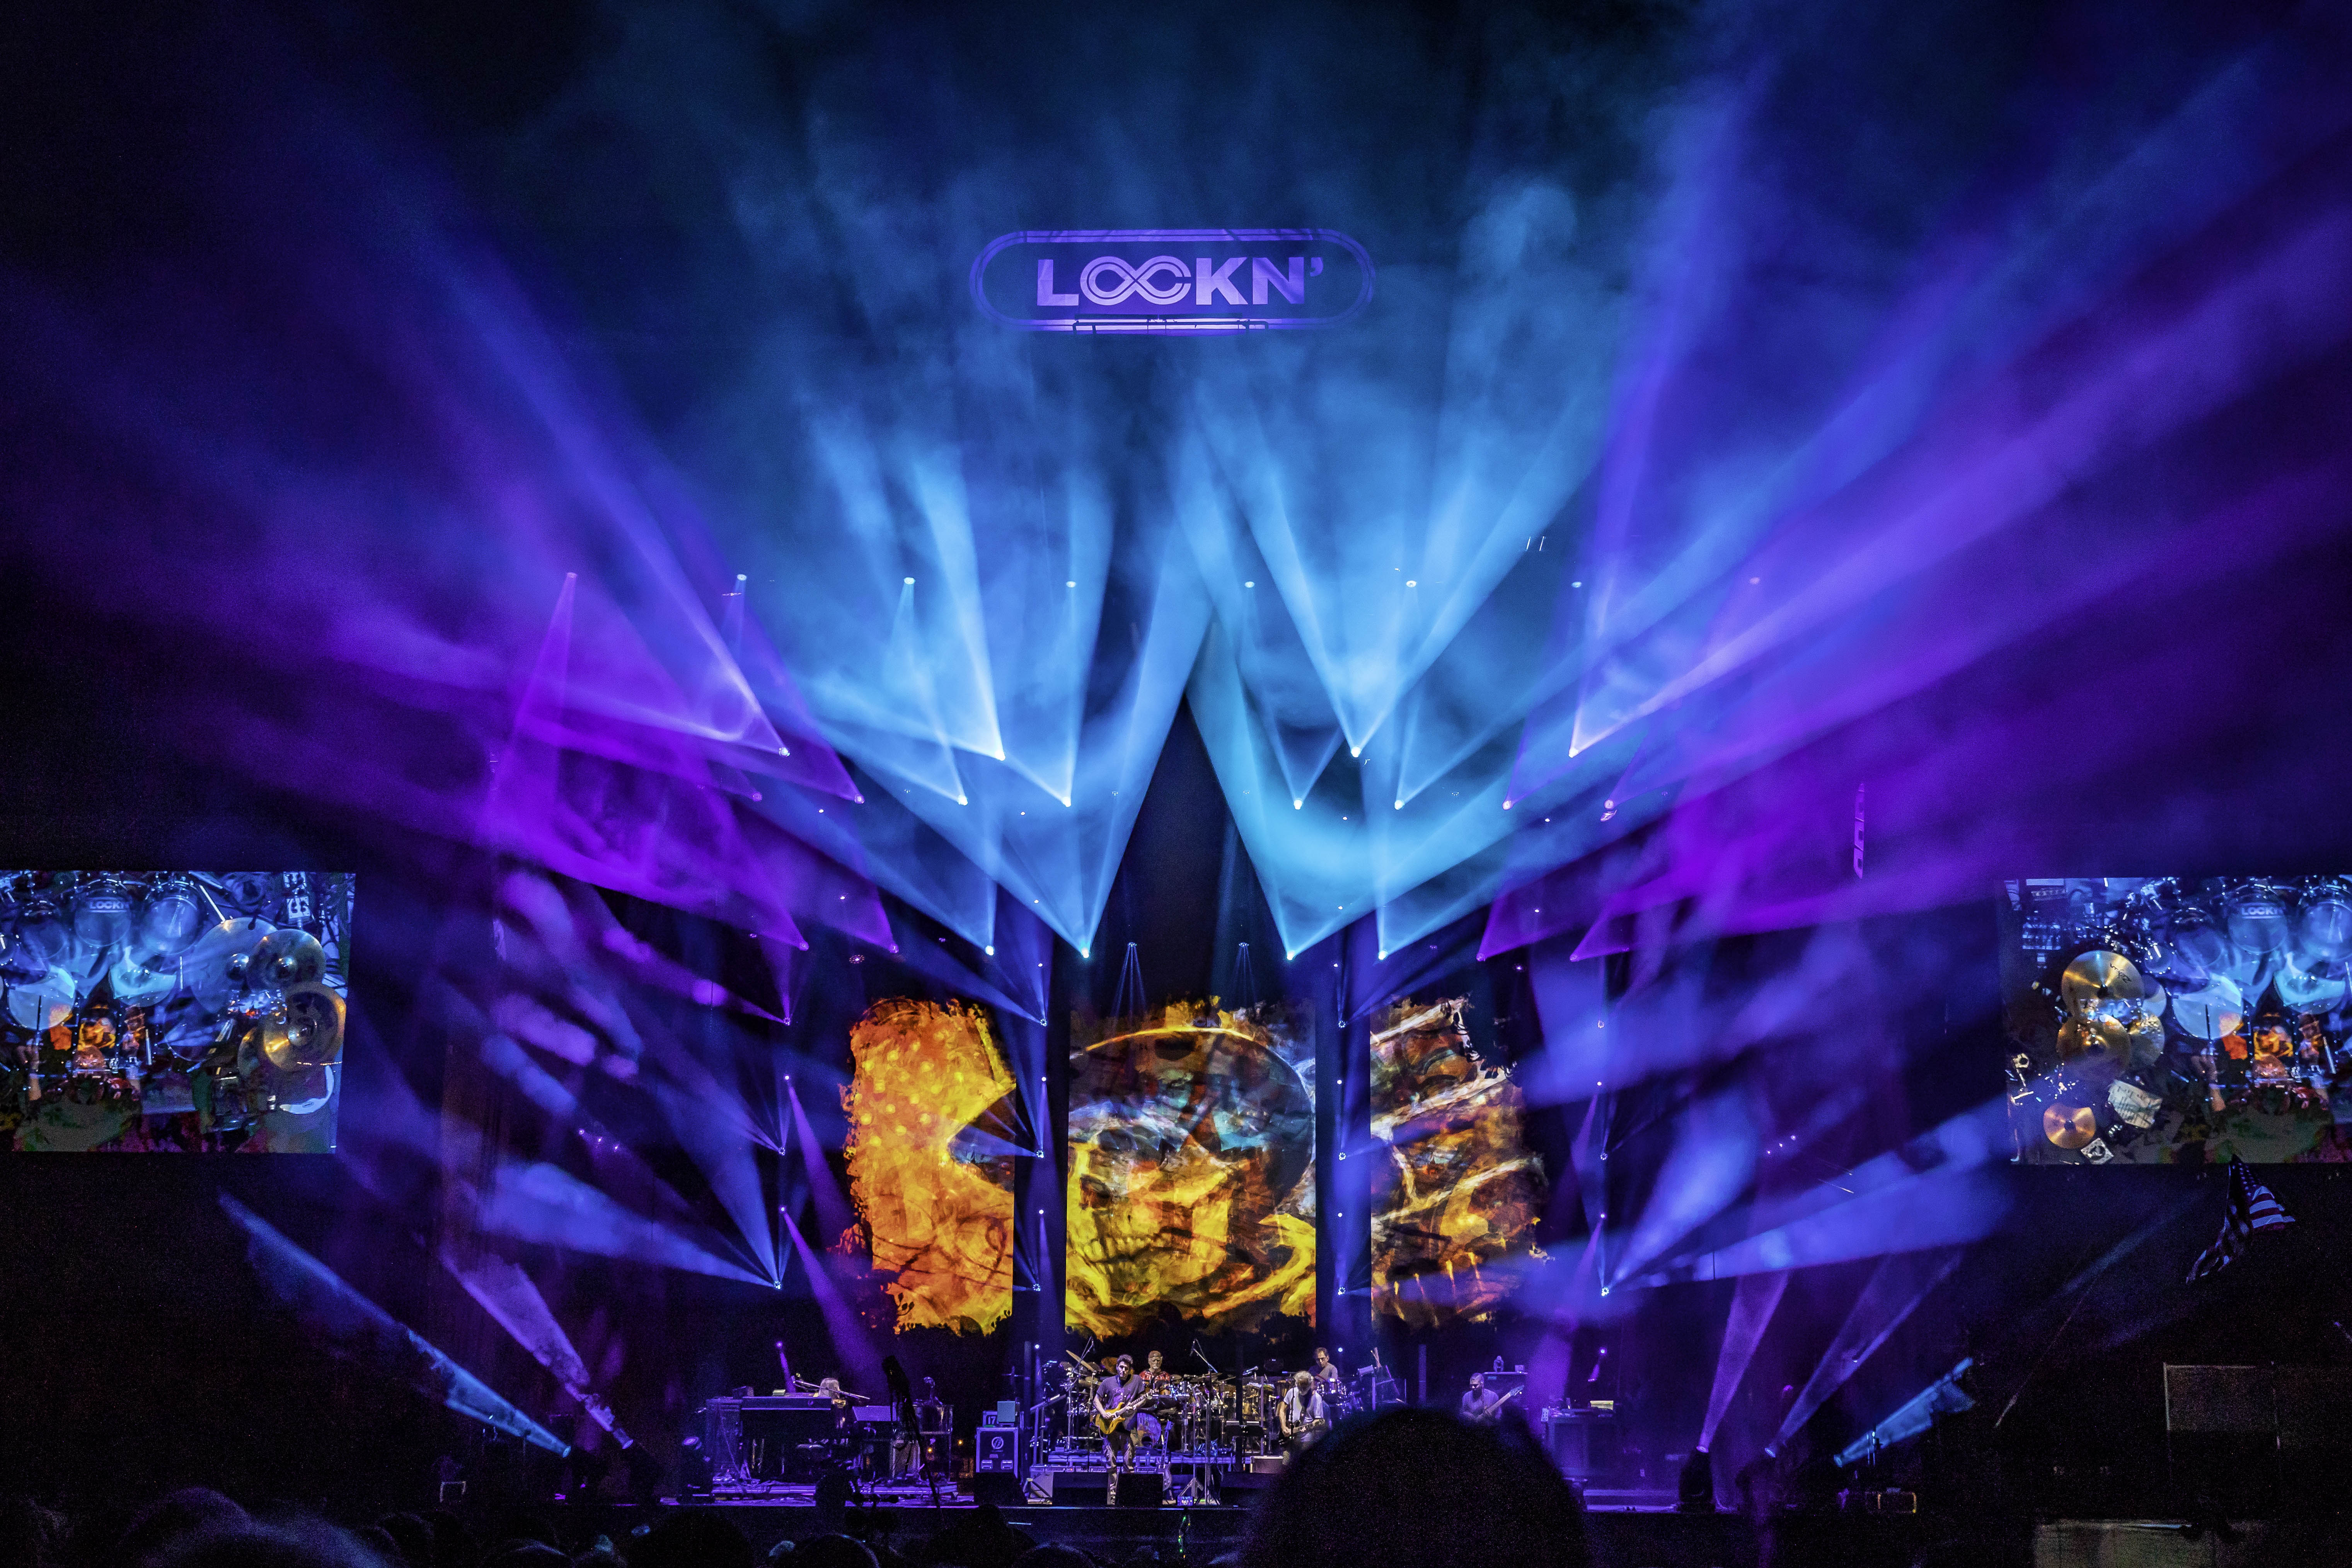 Chris Ragan of BML-Blackbird Boldly Lights The Stages of Lockn' Festival